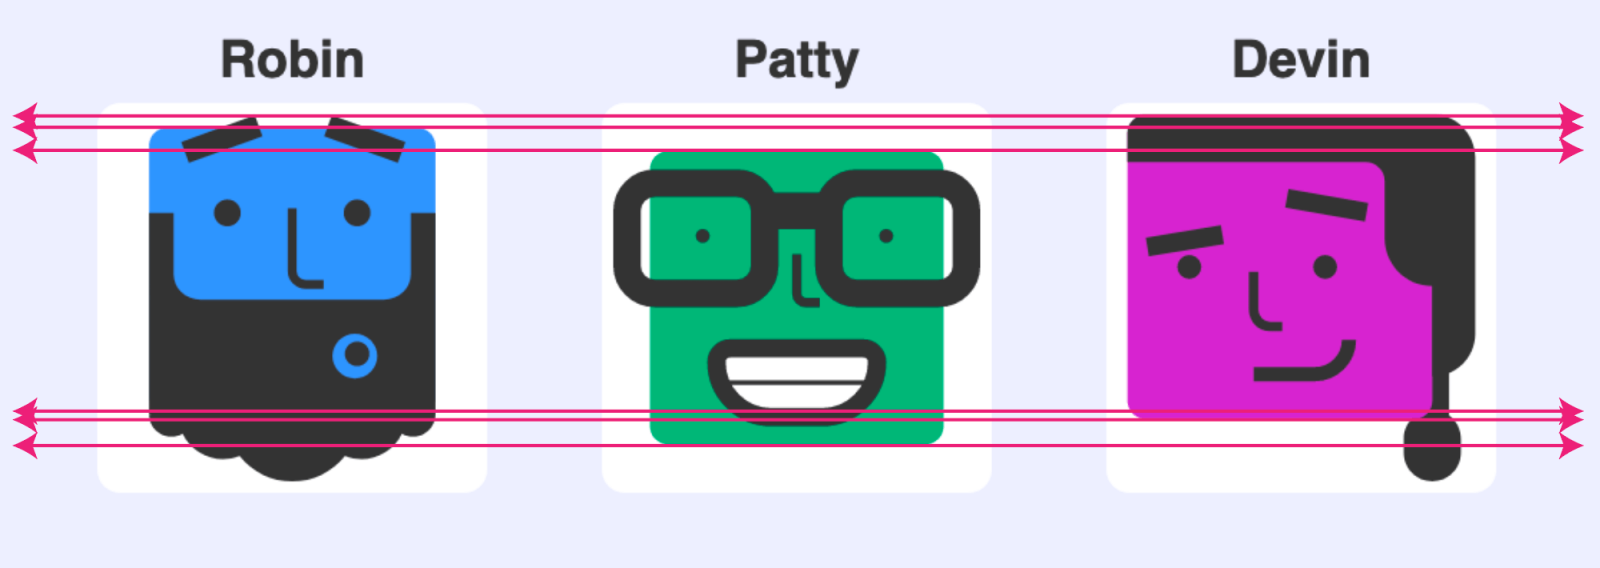 Detailed screenshot of the three modified avatars placed on the page. Lines are overlaid which show the misalignment of the icons' background squares.